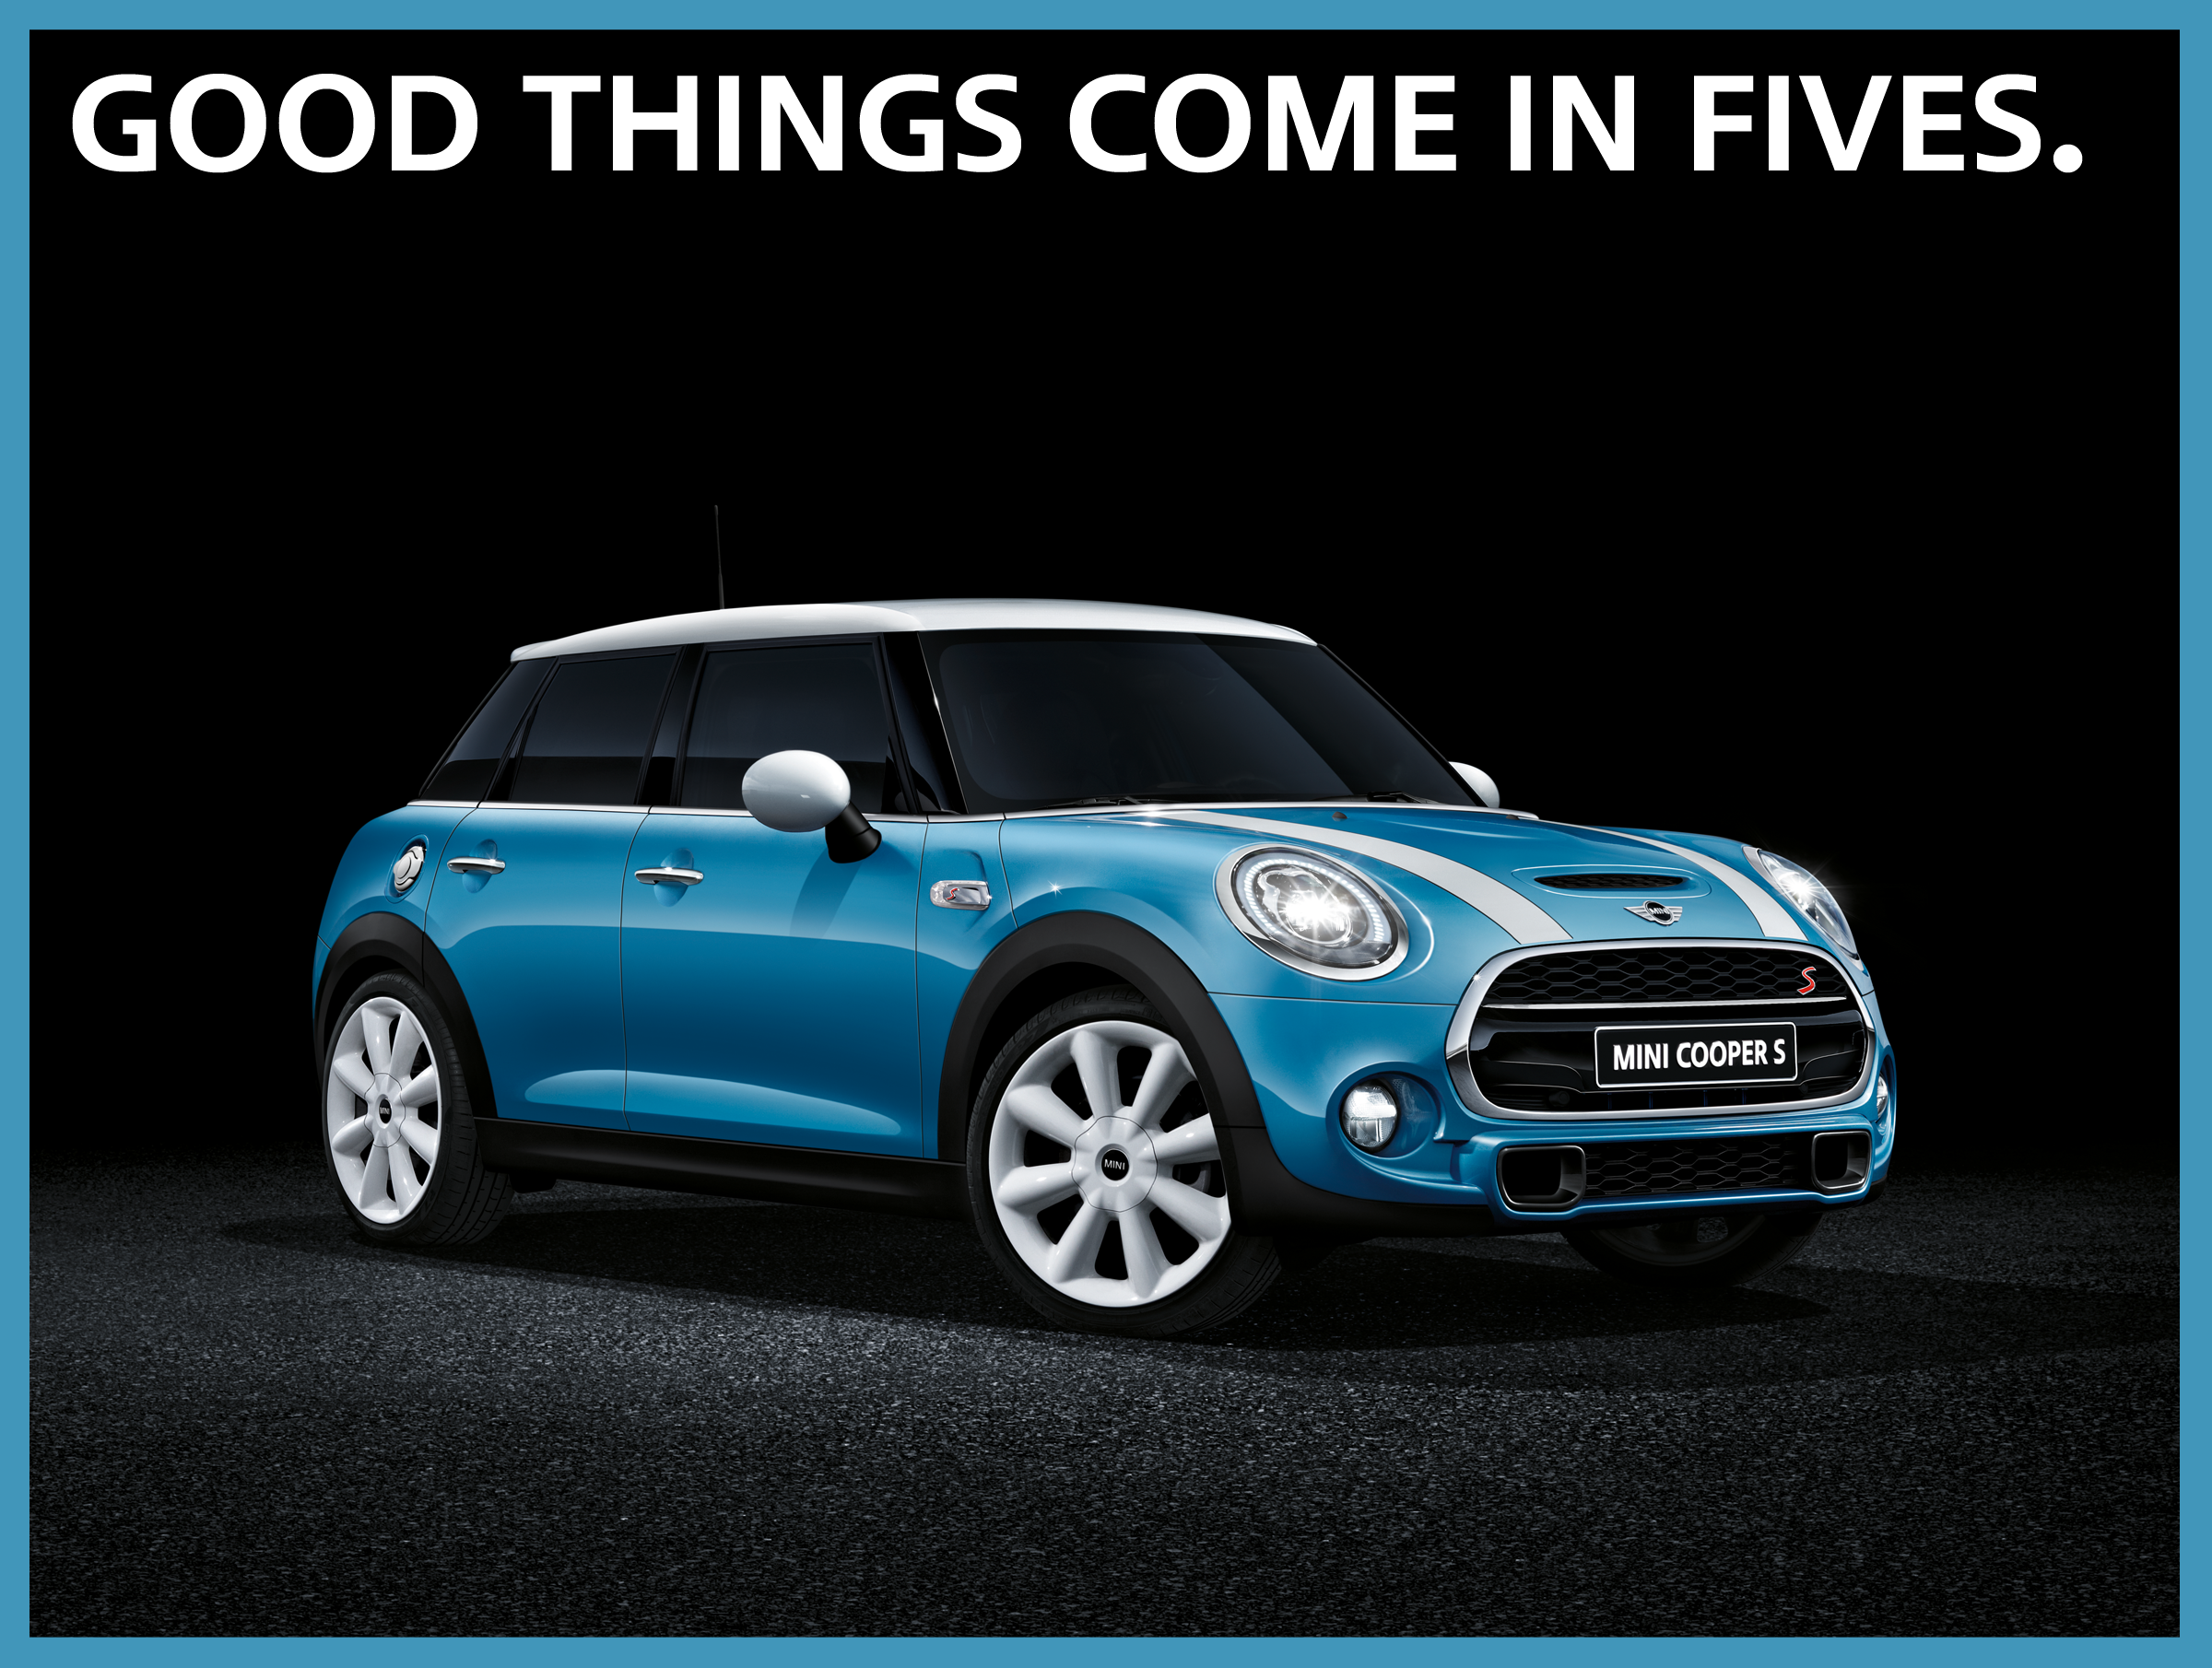 invest buy classic ridez img mini a in drive fun cooper door you something can coopers